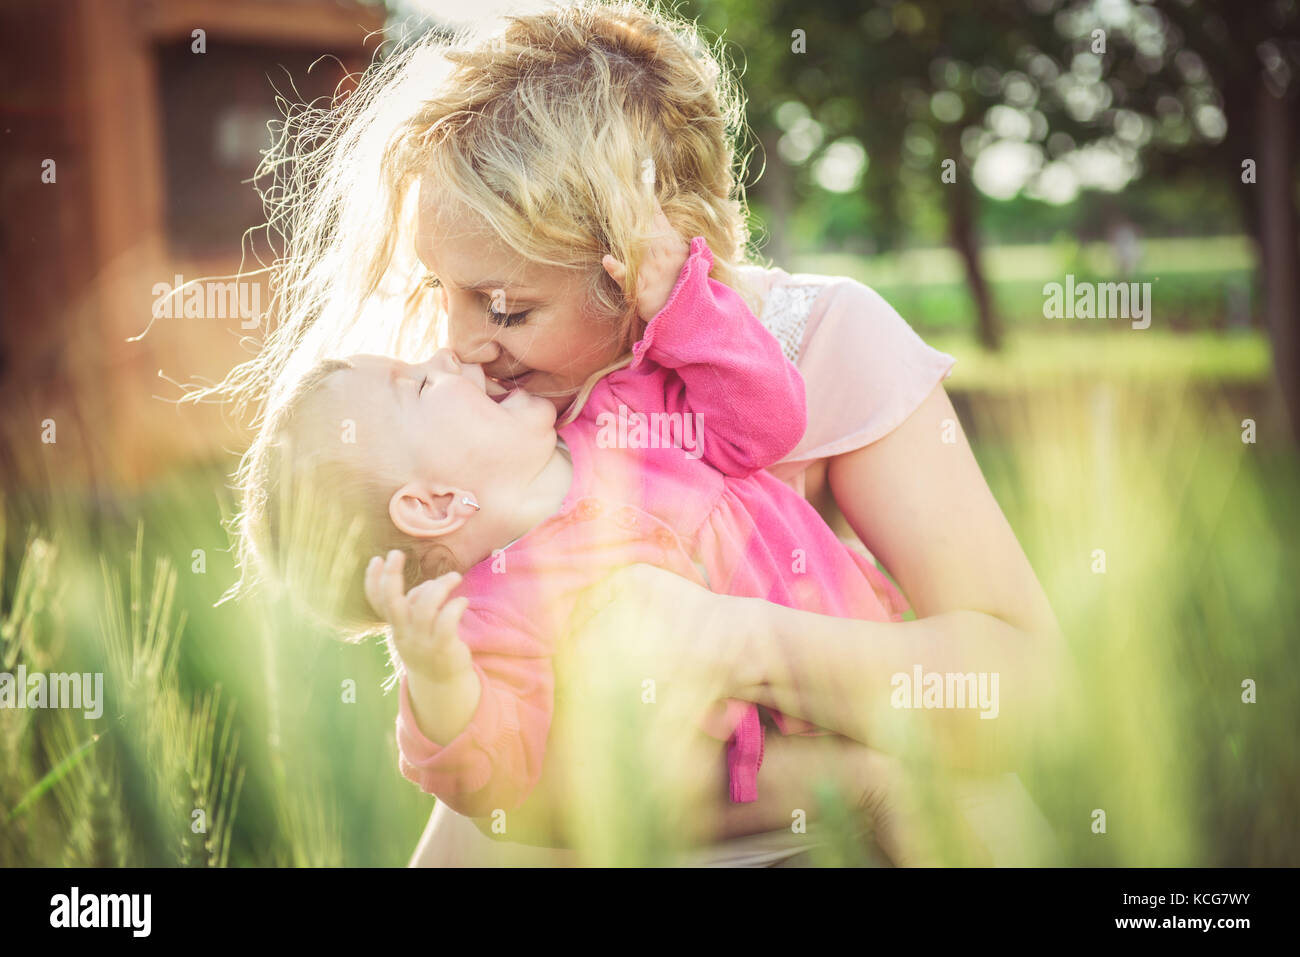 Young mother holding and kissing her baby in the grass - Stock Image